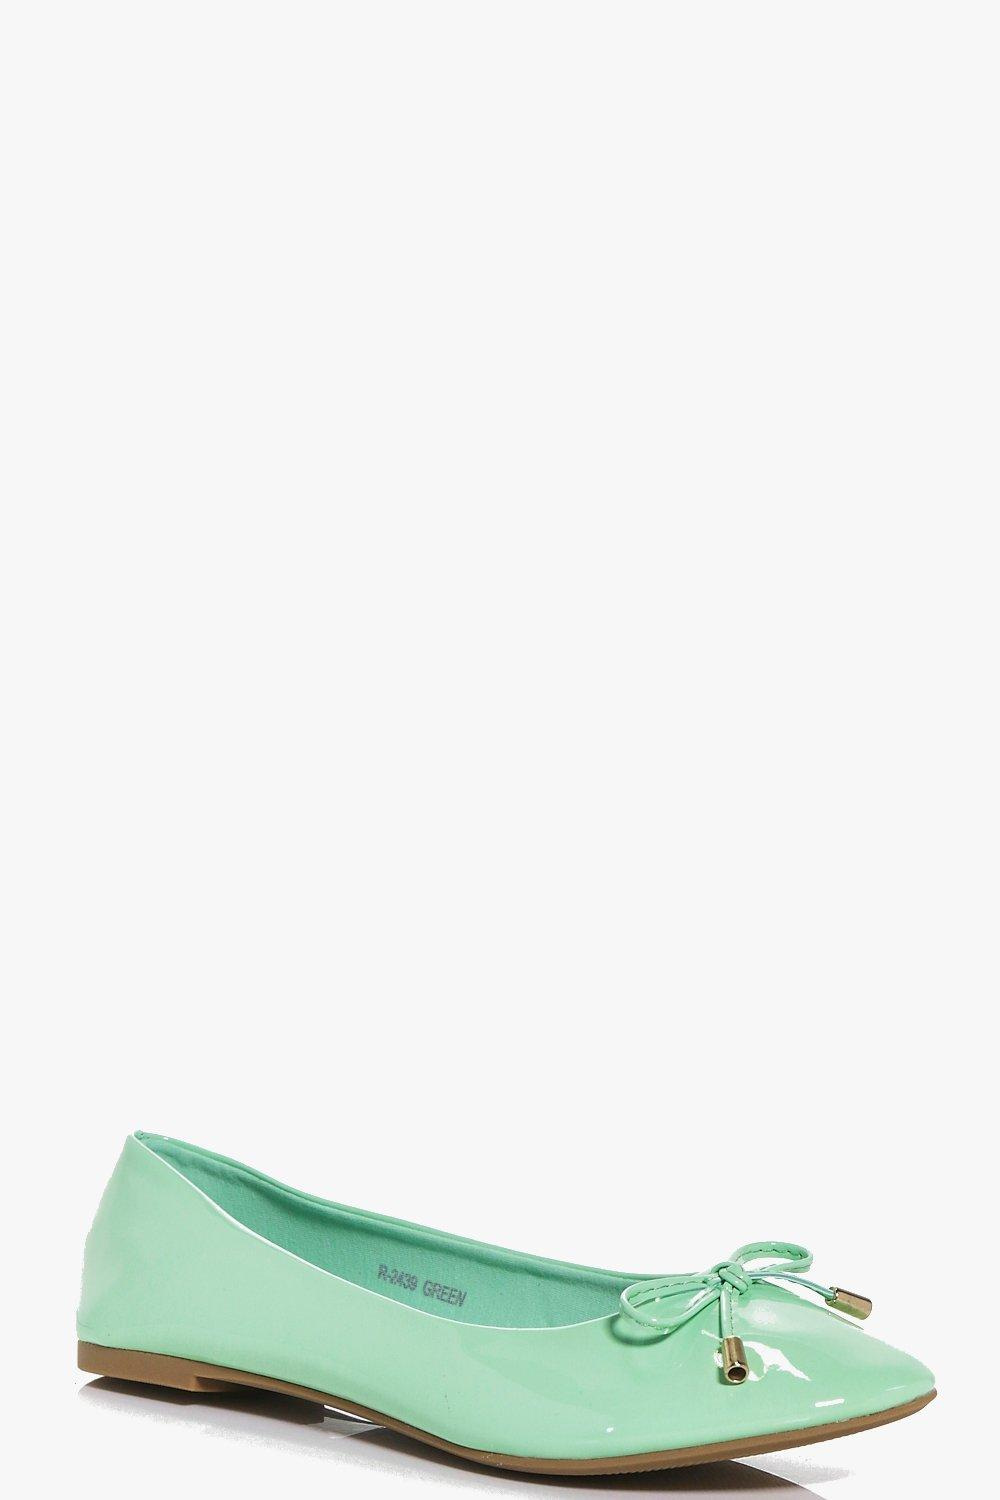 Megan Bow Trim Ballet Shoes